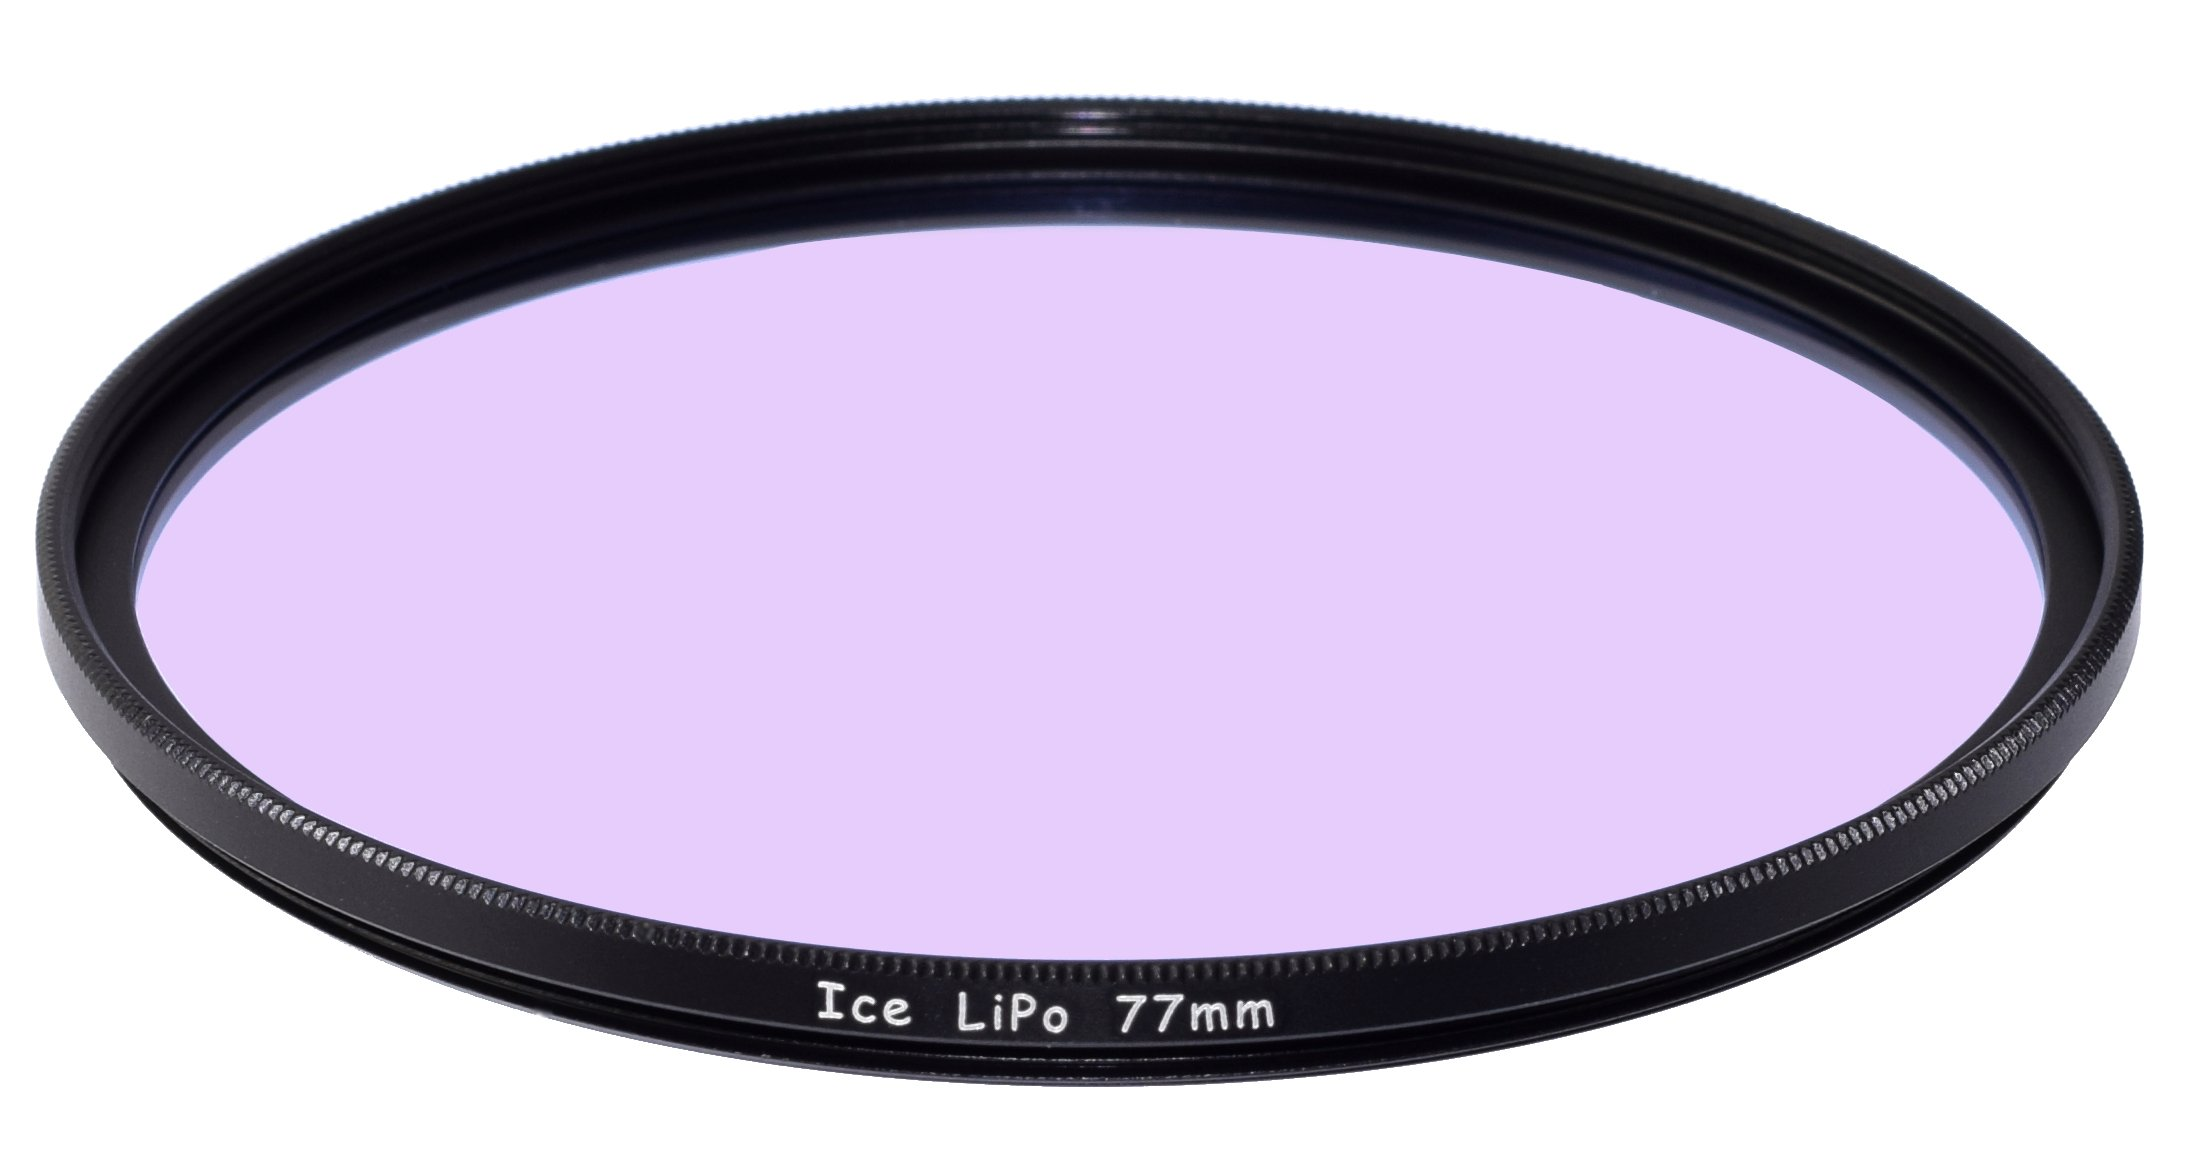 ICE 77mm LiPo Filter Light Pollution Reduction for Night Sky/Star 77